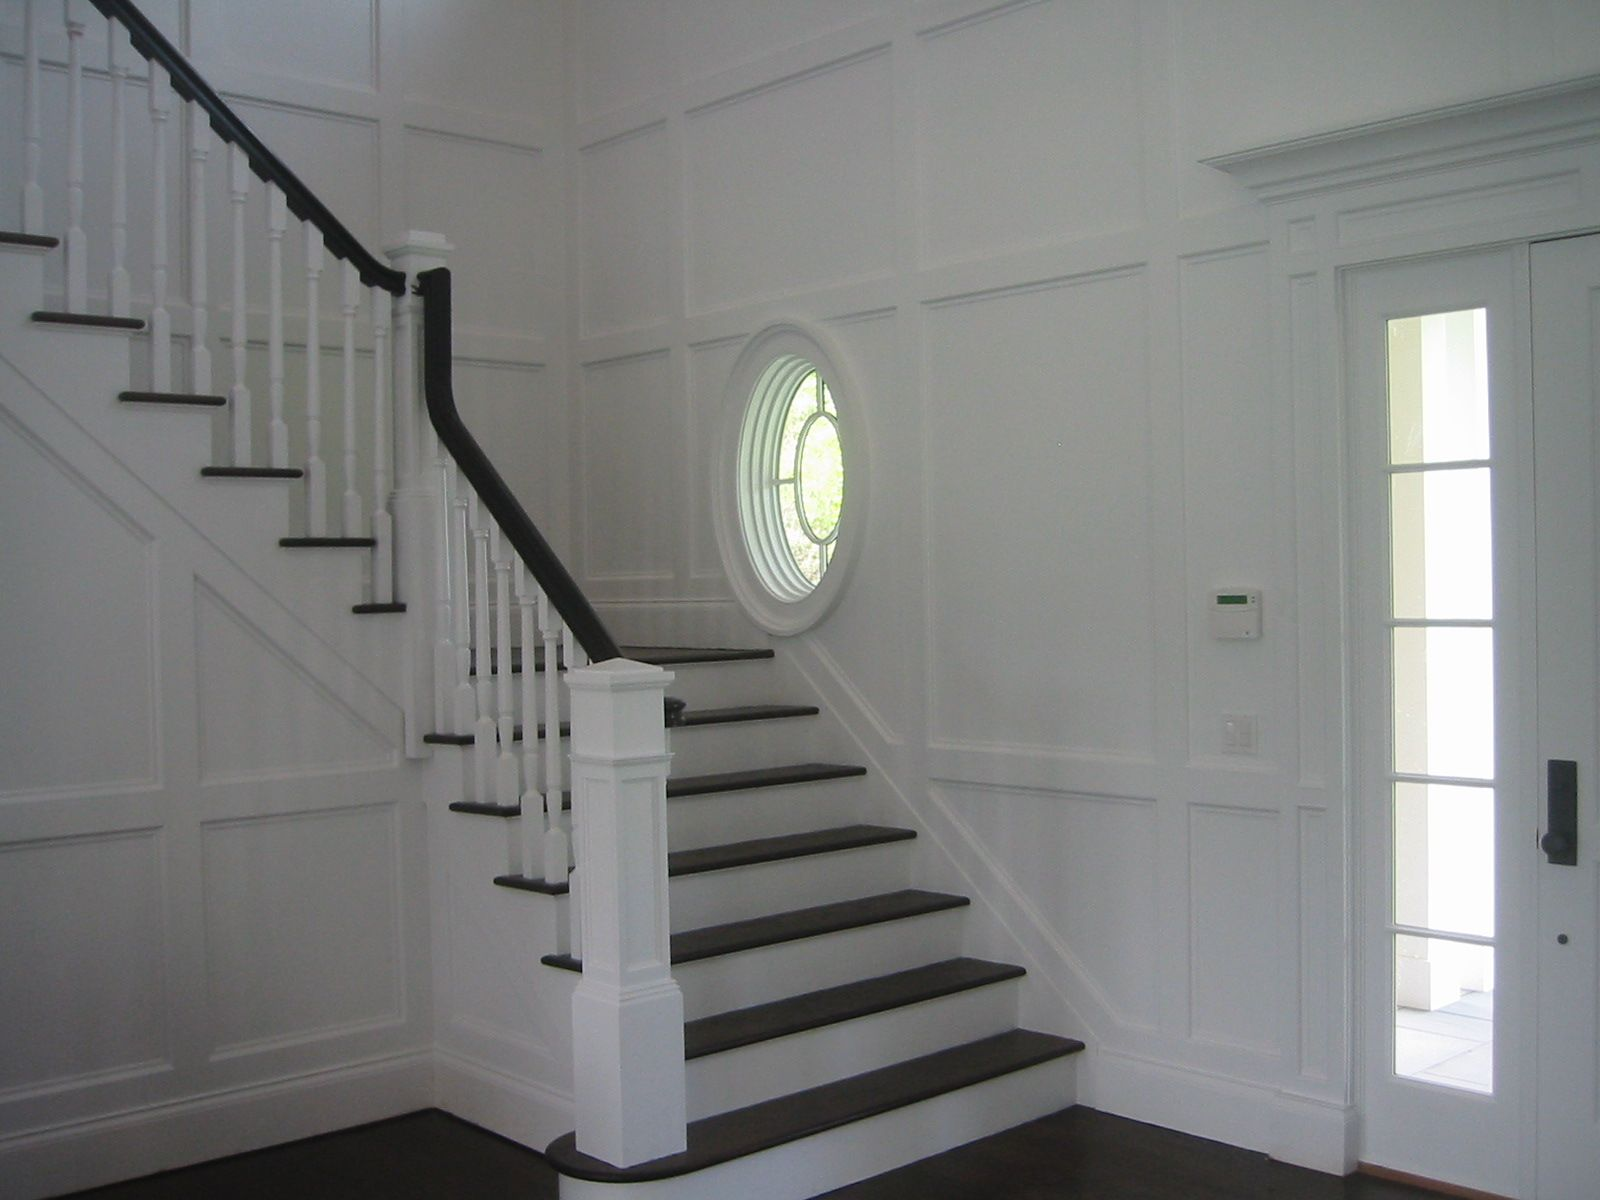 L shaped staircase with eliptical window at landing ...